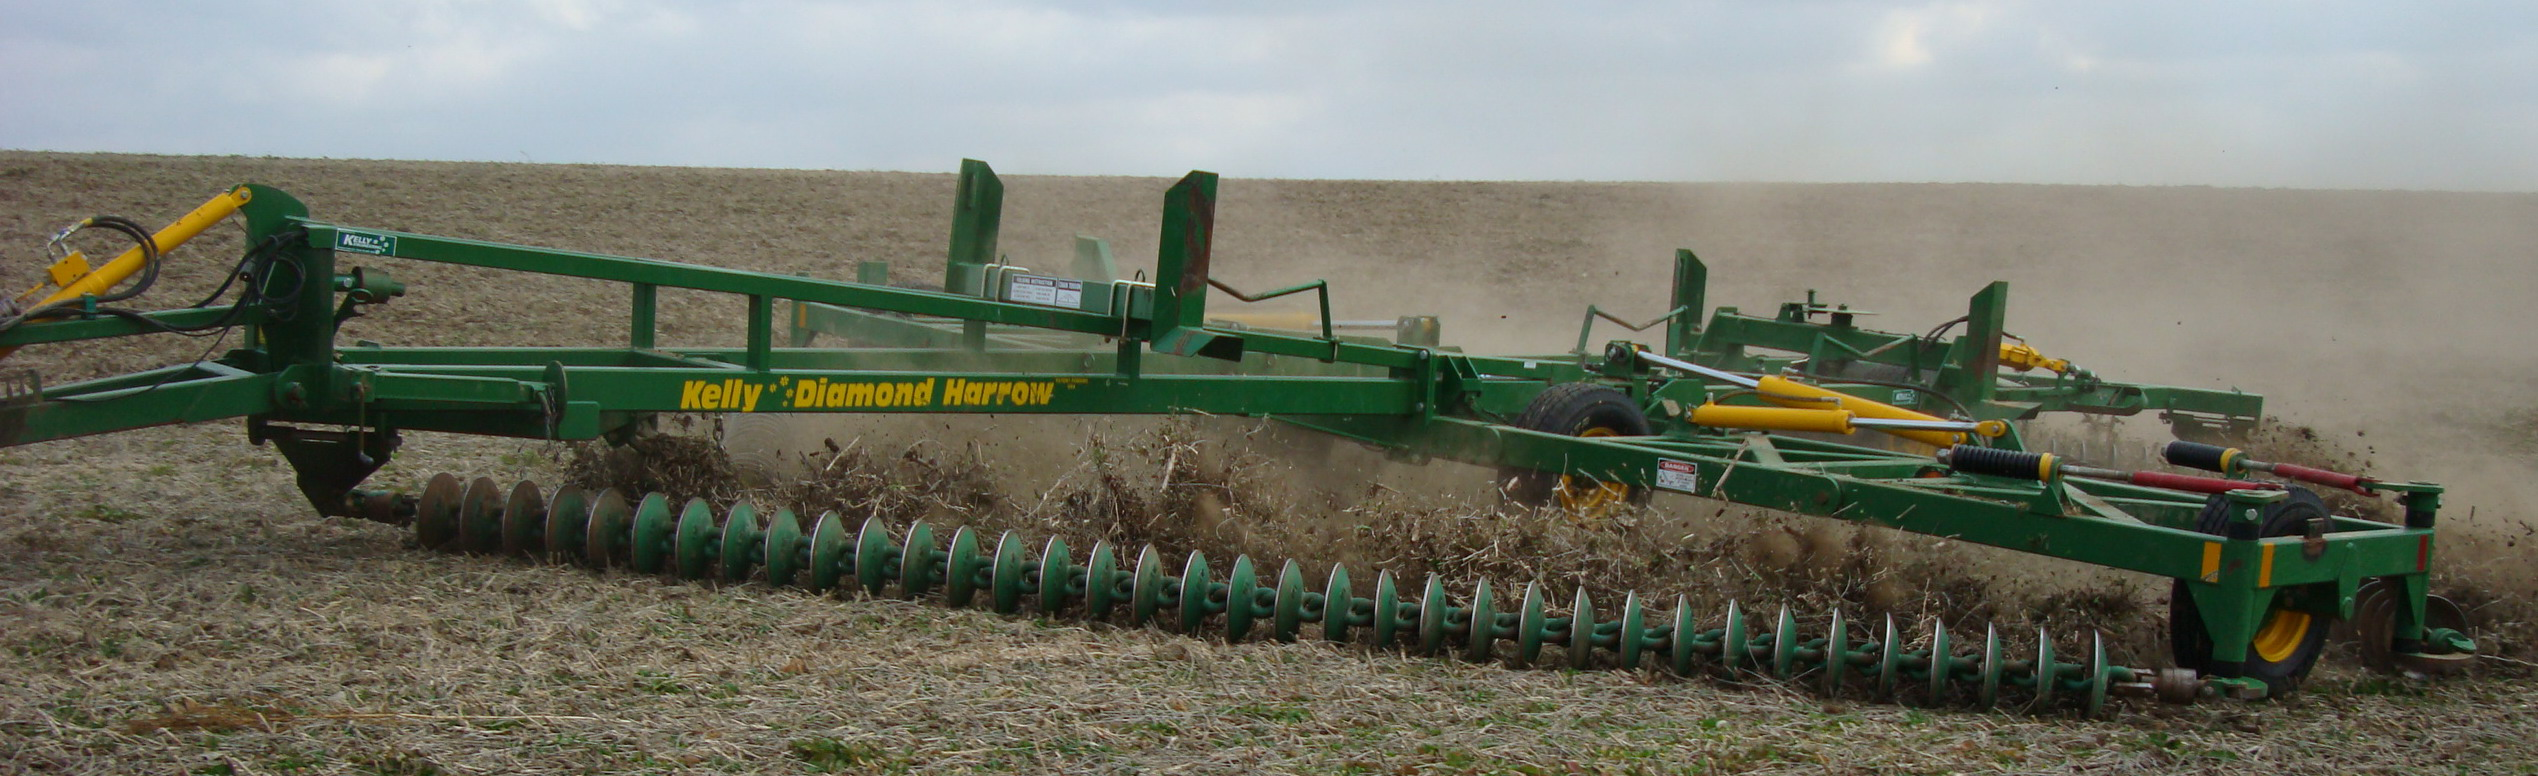 Chain Harrow Disc : Featured product kelly engineering disc chain harrow